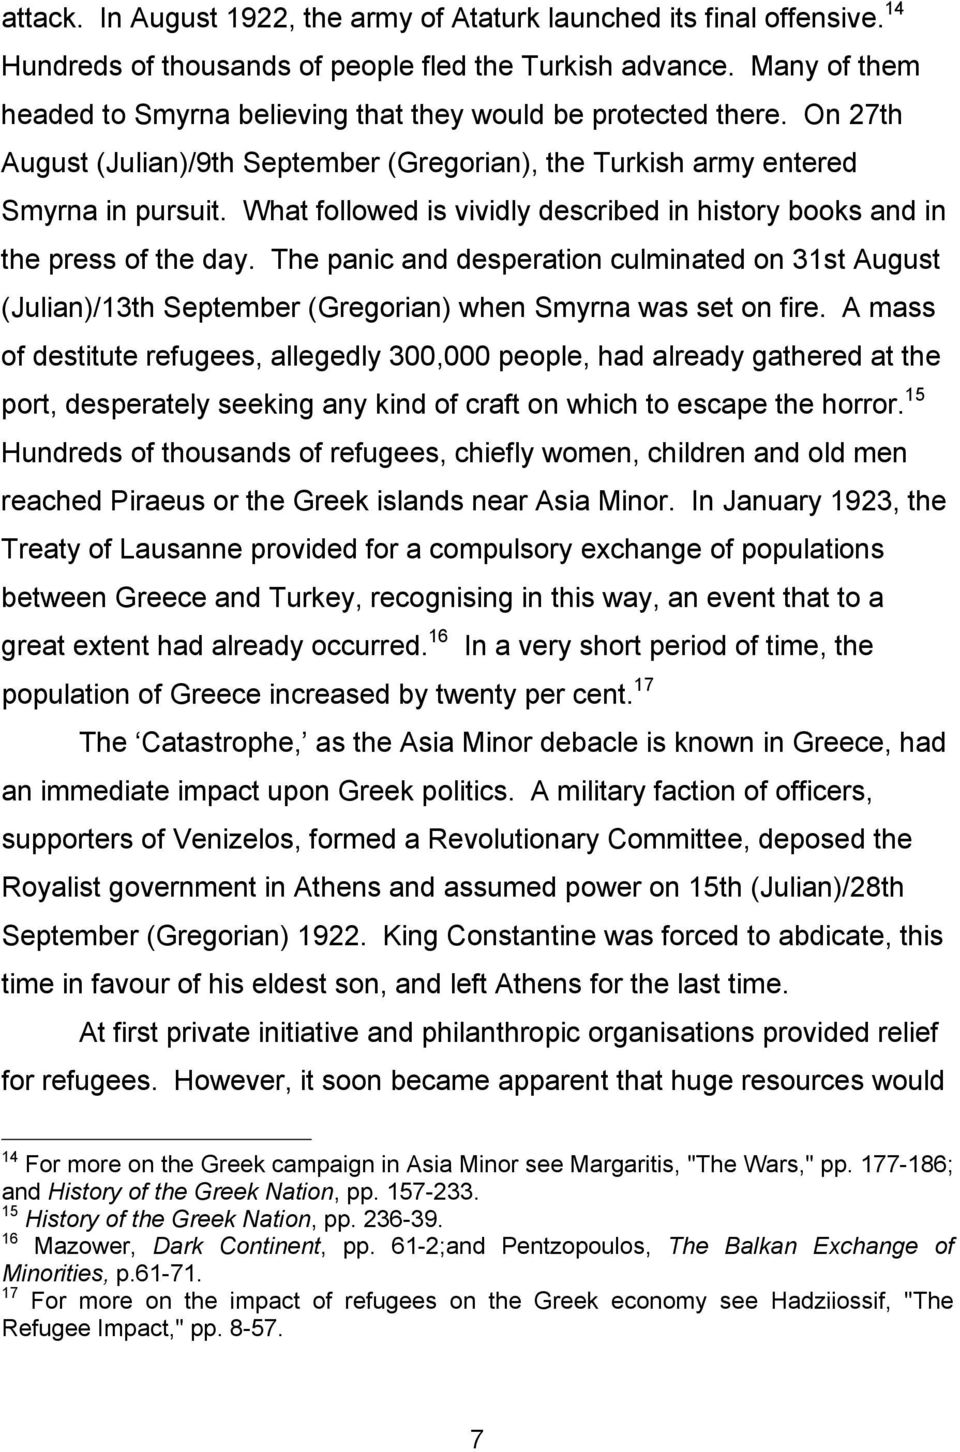 What followed is vividly described in history books and in the press of the day. The panic and desperation culminated on 31st August (Julian)/13th September (Gregorian) when Smyrna was set on fire.